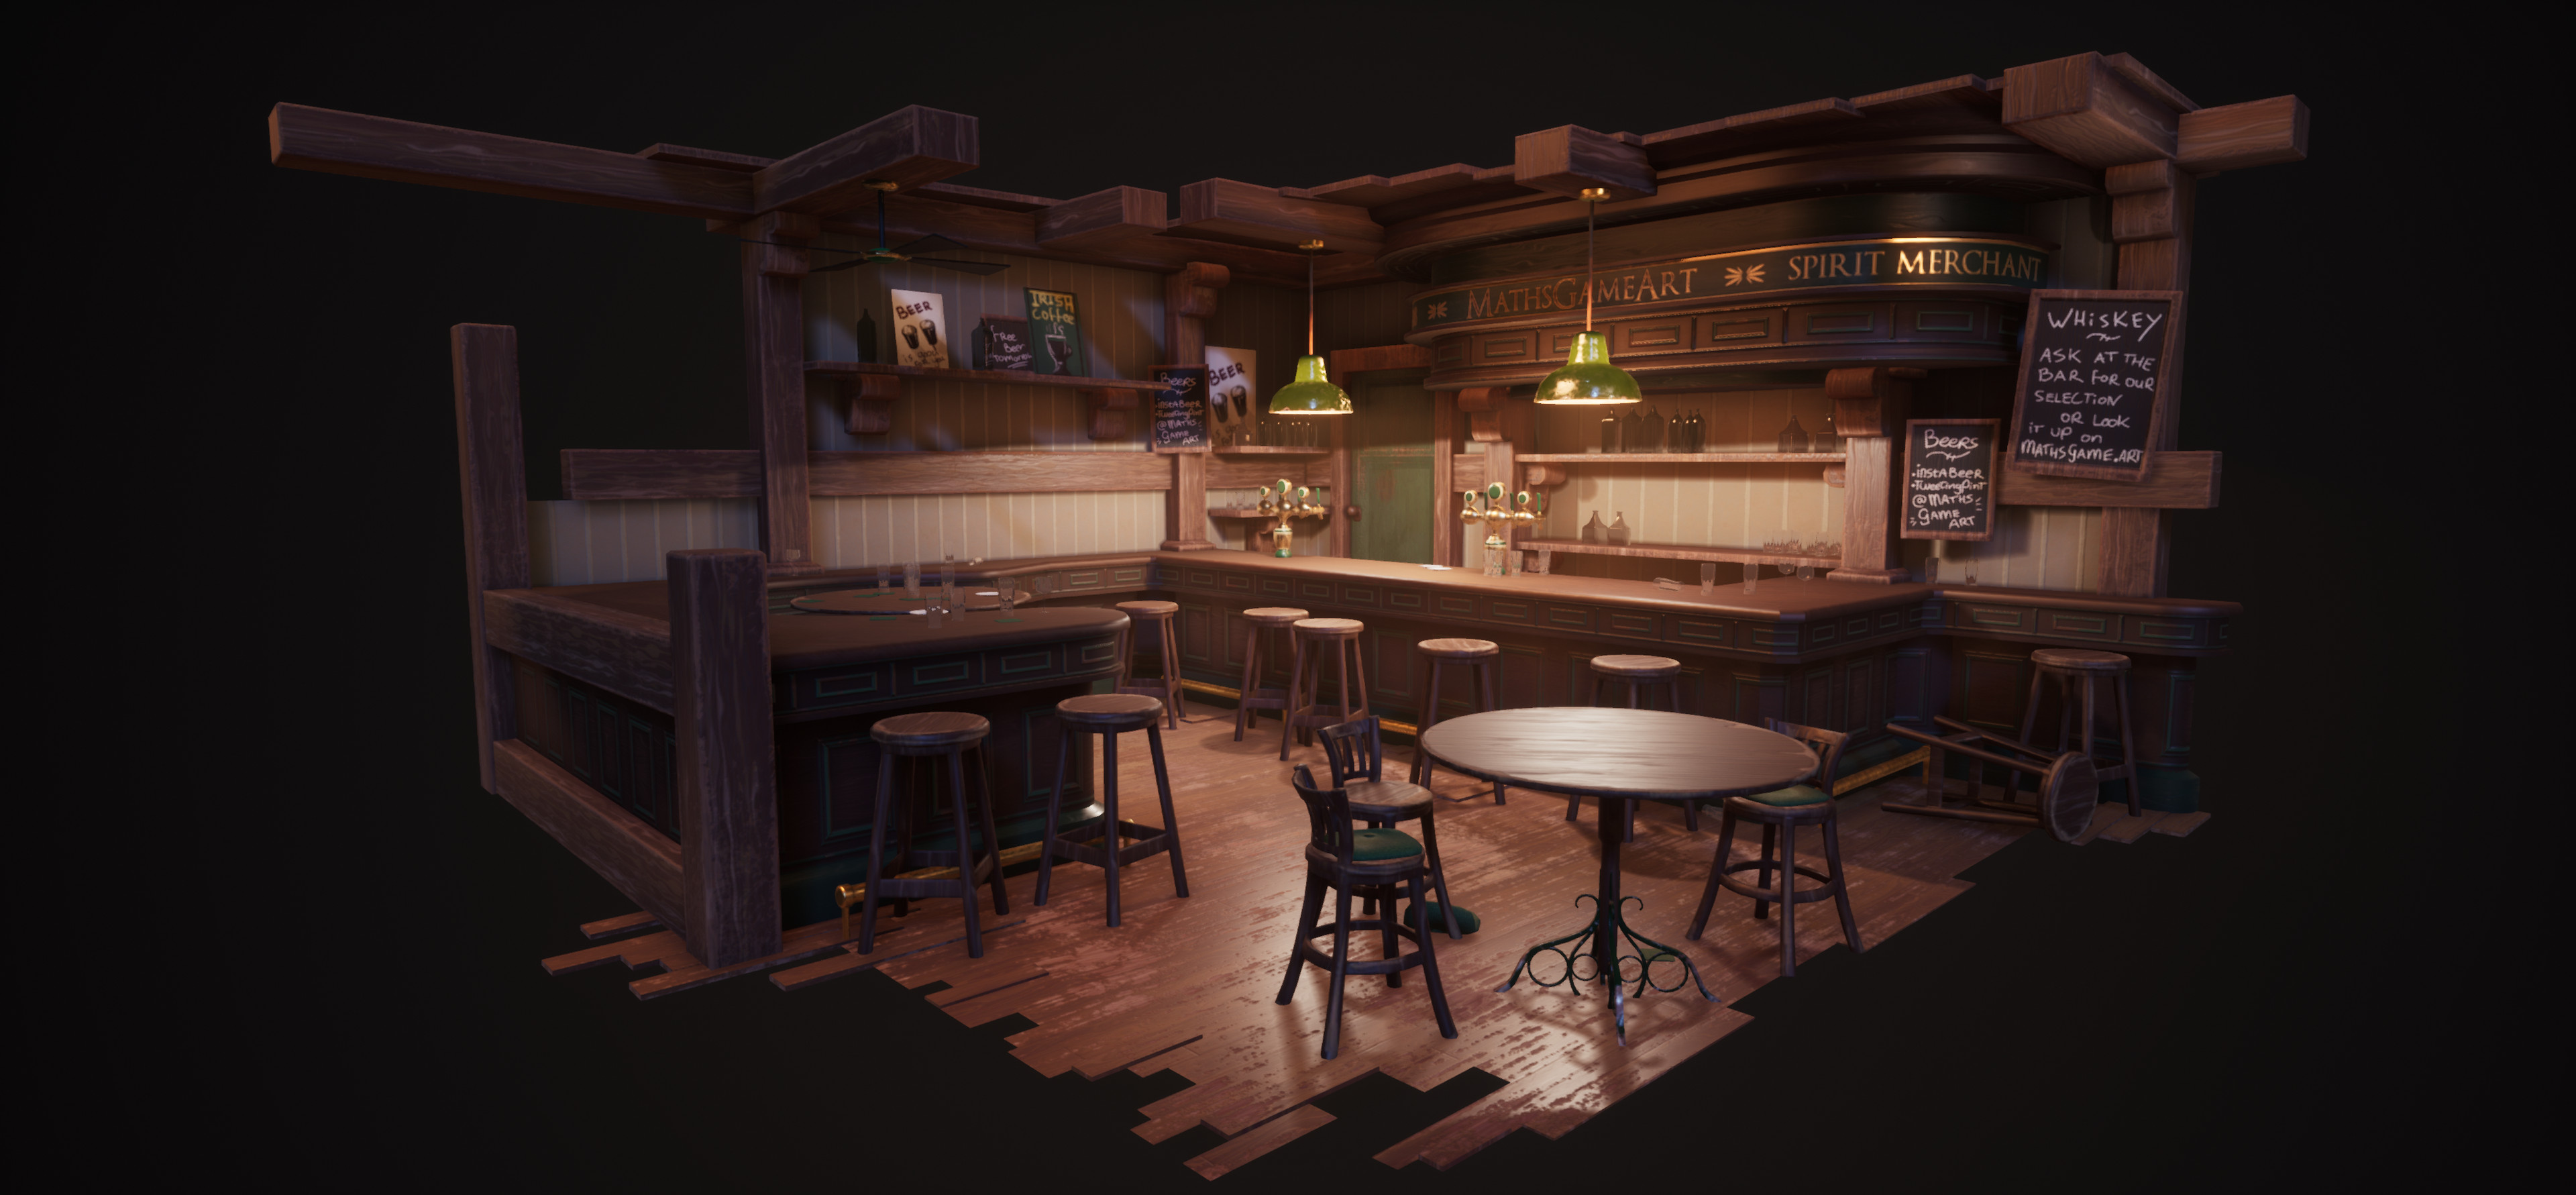 Overview of the entire composition in UE4. The volumetric lights really give that hazy/smokey pub feel and helps a lot to get the right atmosphere.